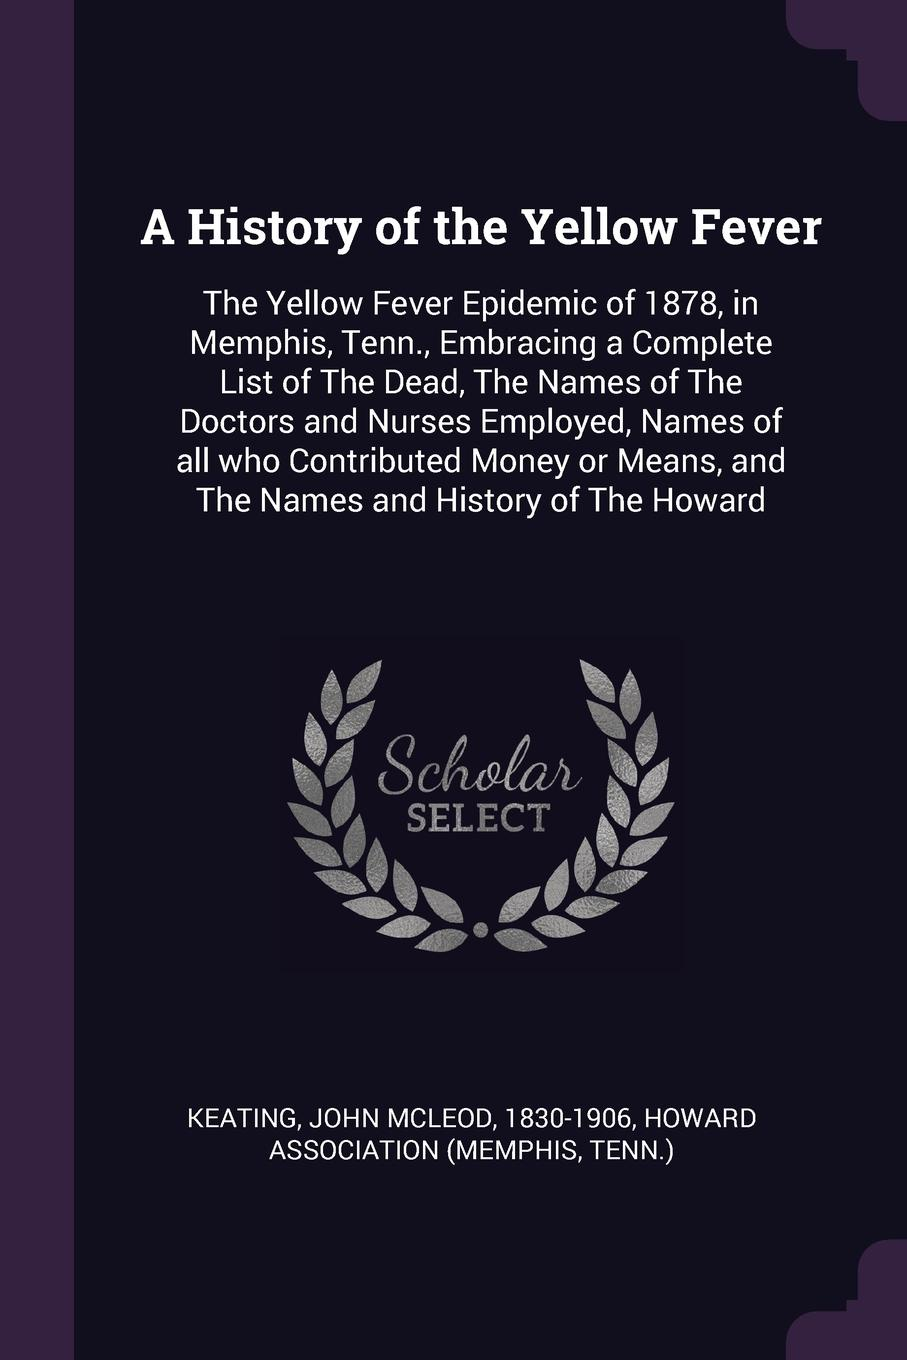 John McLeod Keating A History of the Yellow Fever. The Yellow Fever Epidemic of 1878, in Memphis, Tenn., Embracing a Complete List of The Dead, The Names of The Doctors and Nurses Employed, Names of all who Contributed Money or Means, and The Names and History of The...